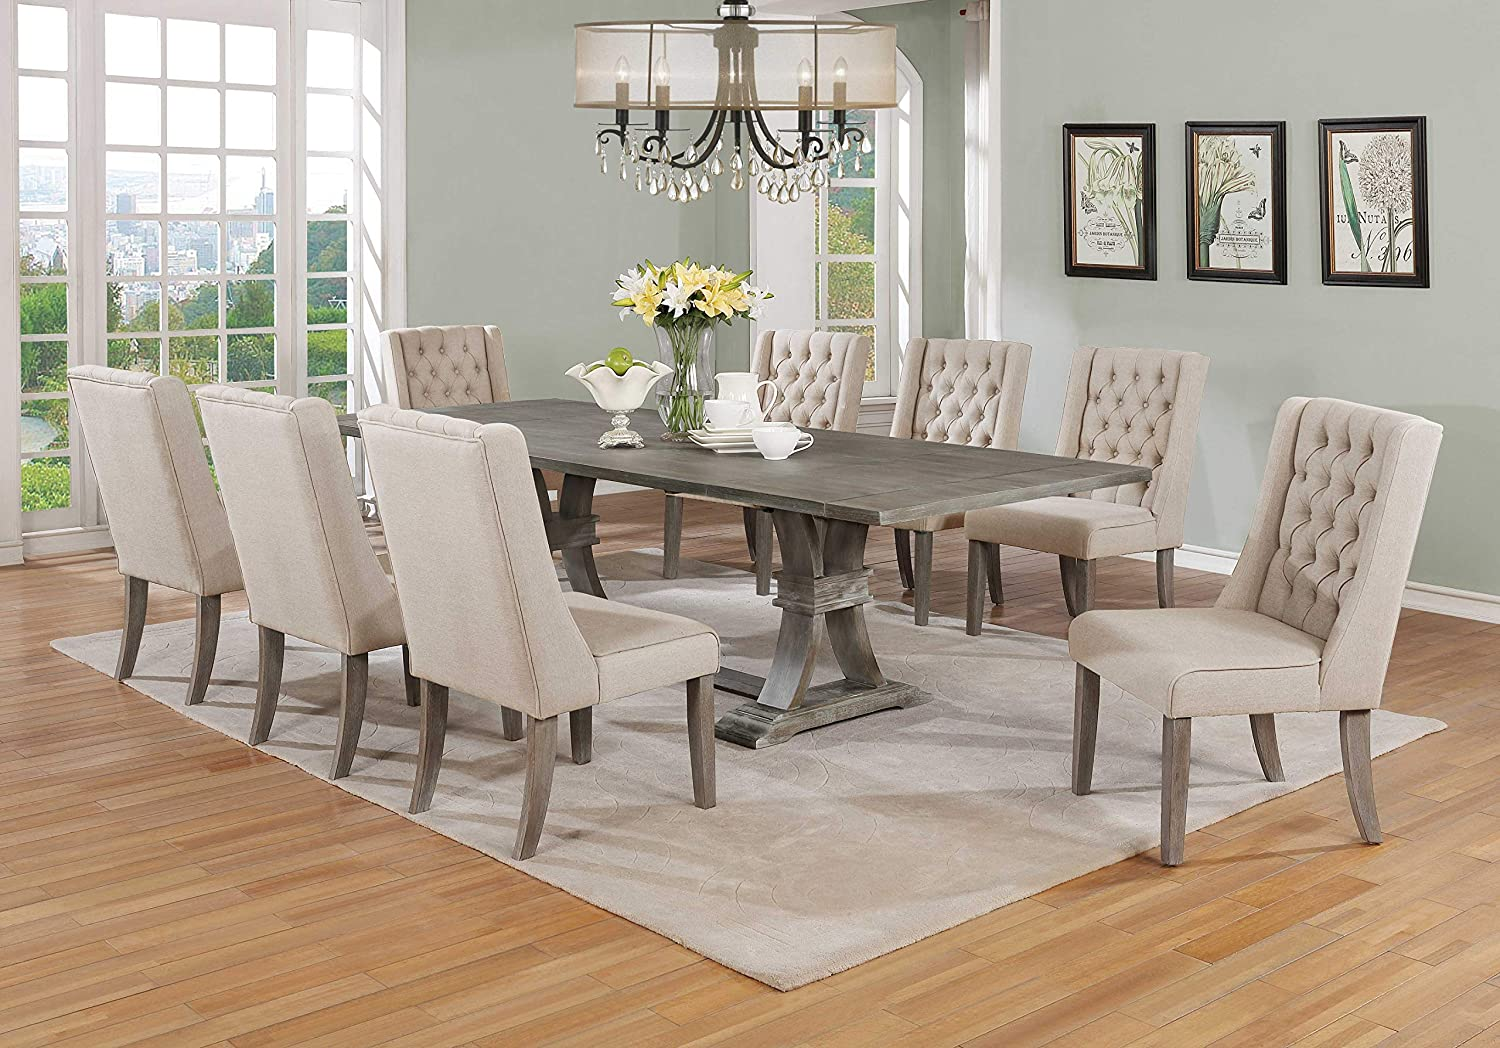 Amazon Com Best Quality Furniture 9pc Dining Set 1 Table 8 Chairs Beige Table Chair Sets